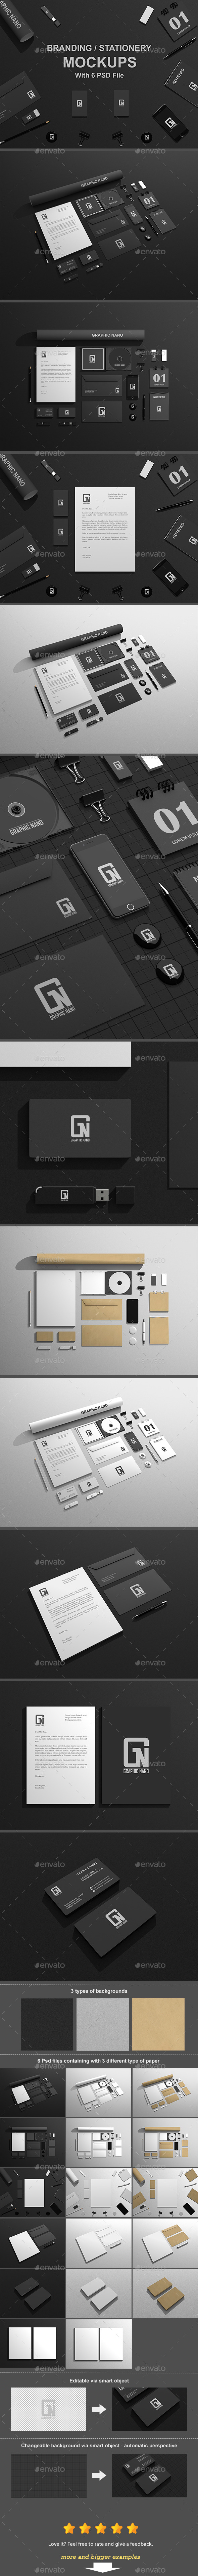 GraphicRiver Branding Stationery Mock-Ups 9857776